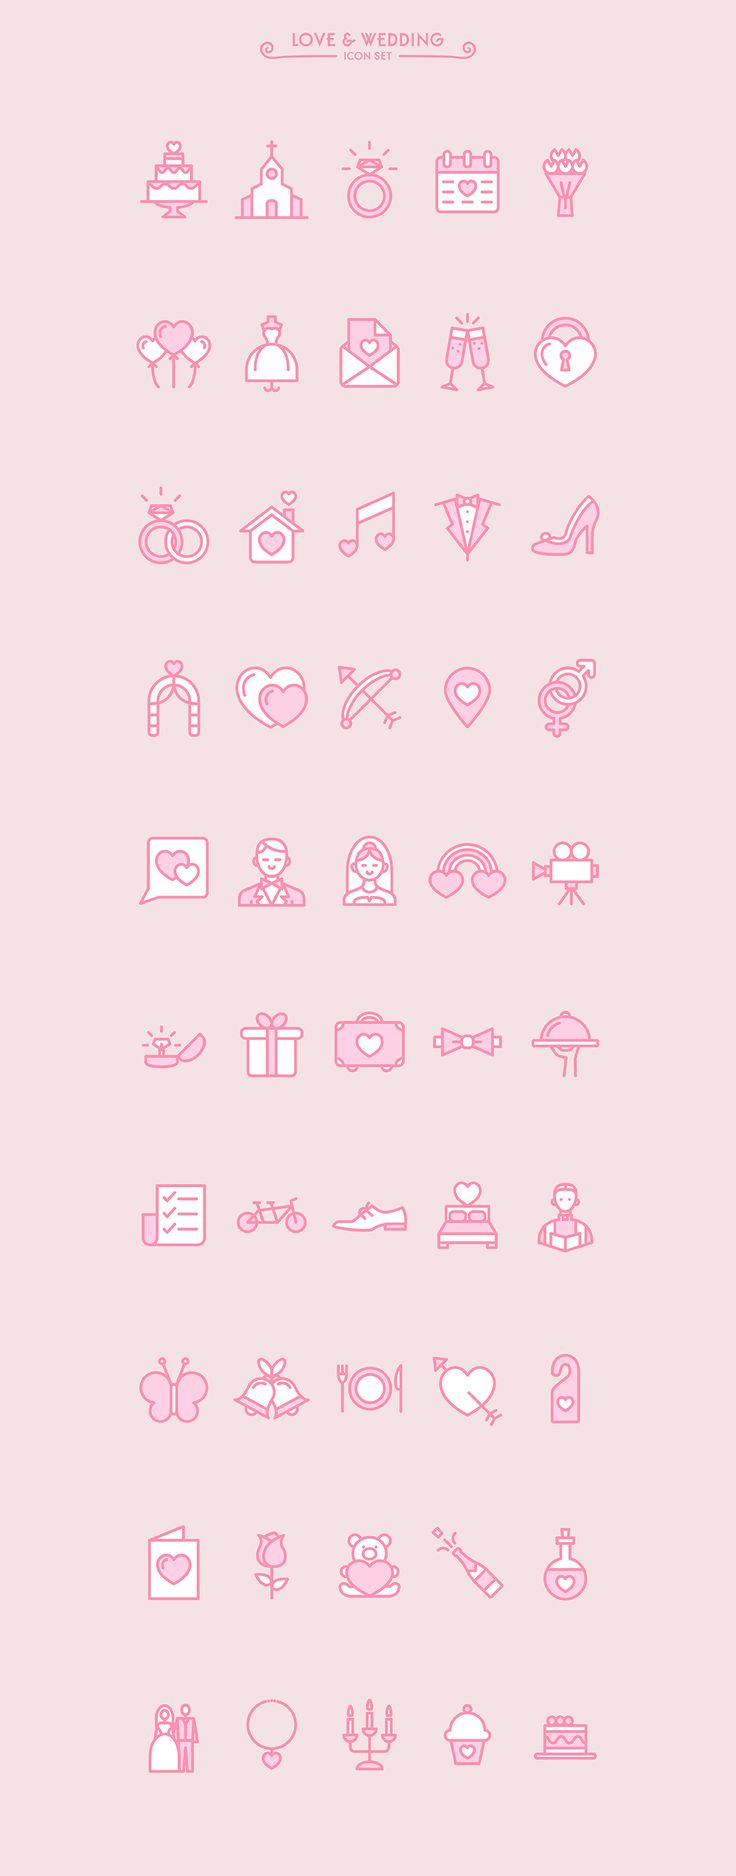 Love & Wedding icon set (free) on Behance